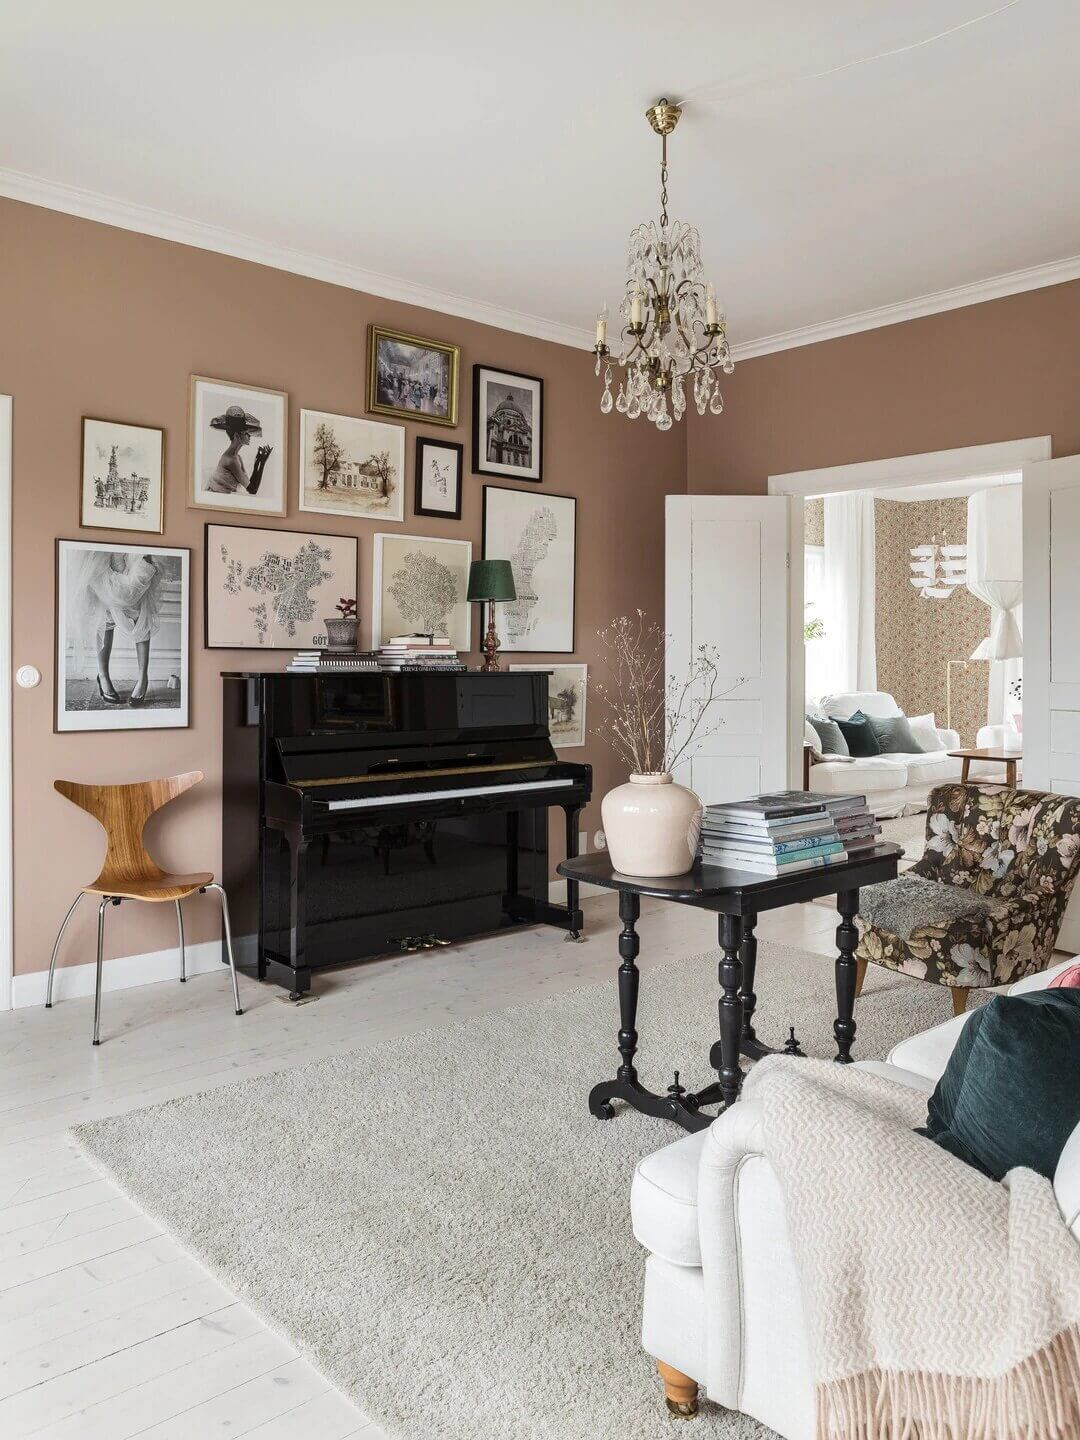 A Swedish Country House Decorated in Soft Pastel Tones